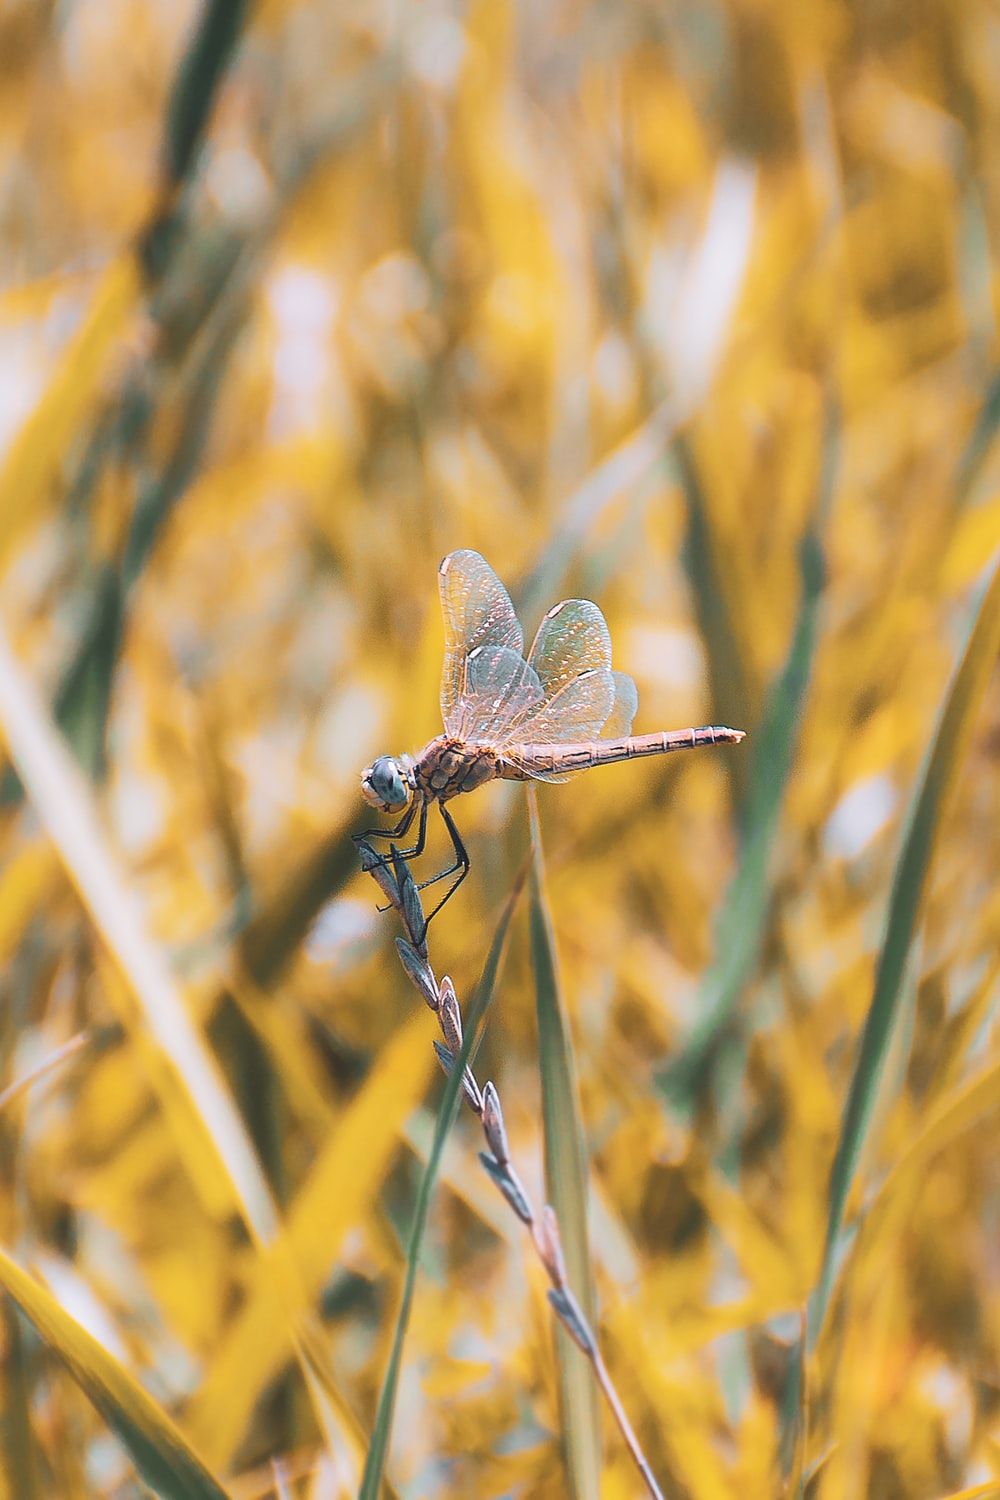 brown dragonfly perched on brown plant stem in close up photography during daytime